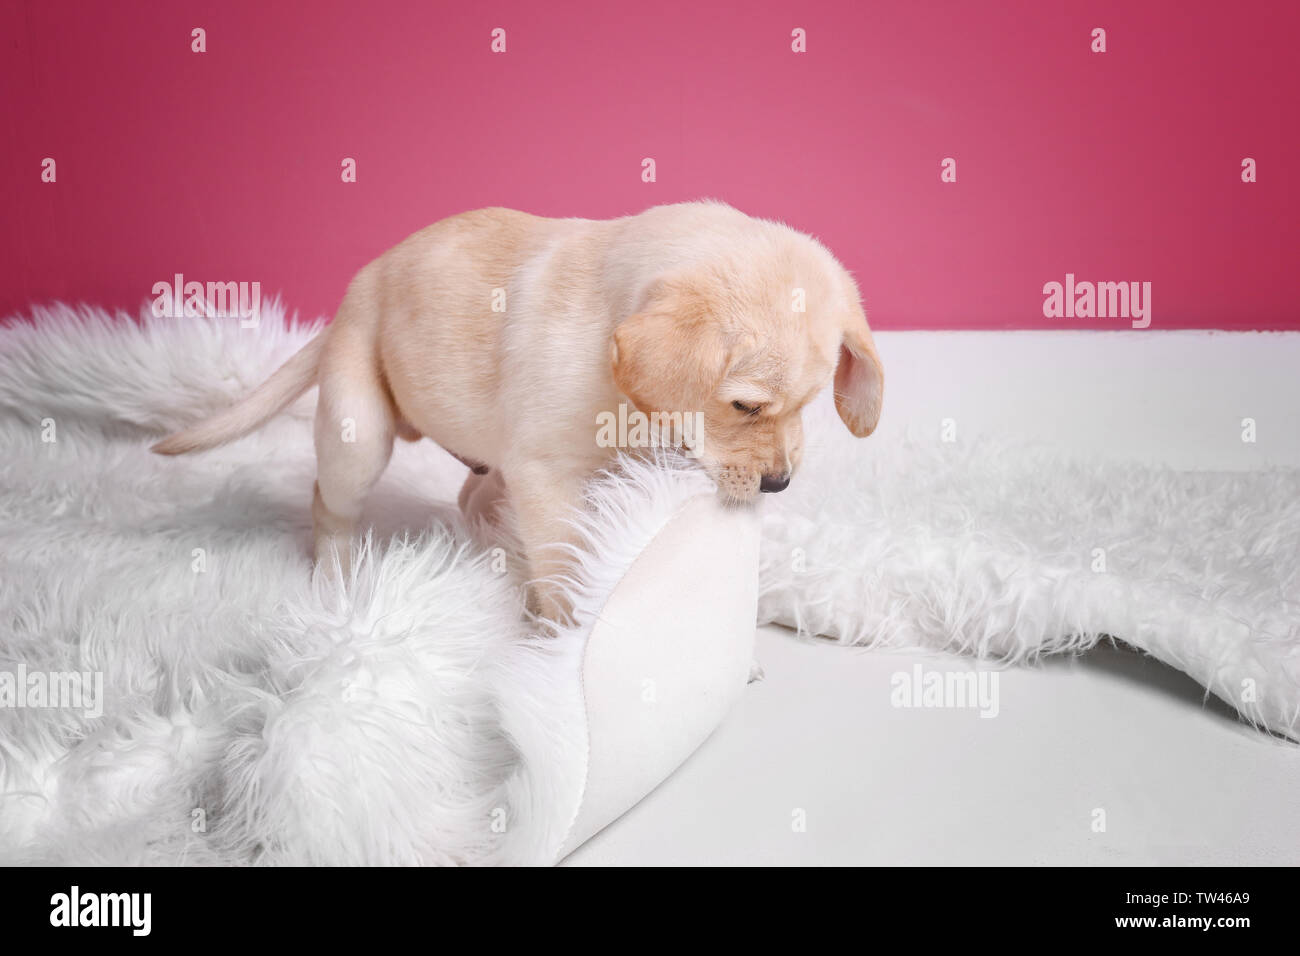 Cute Labrador Retriever Puppy Playing With Fluffy Plaid At Home Stock Photo Alamy